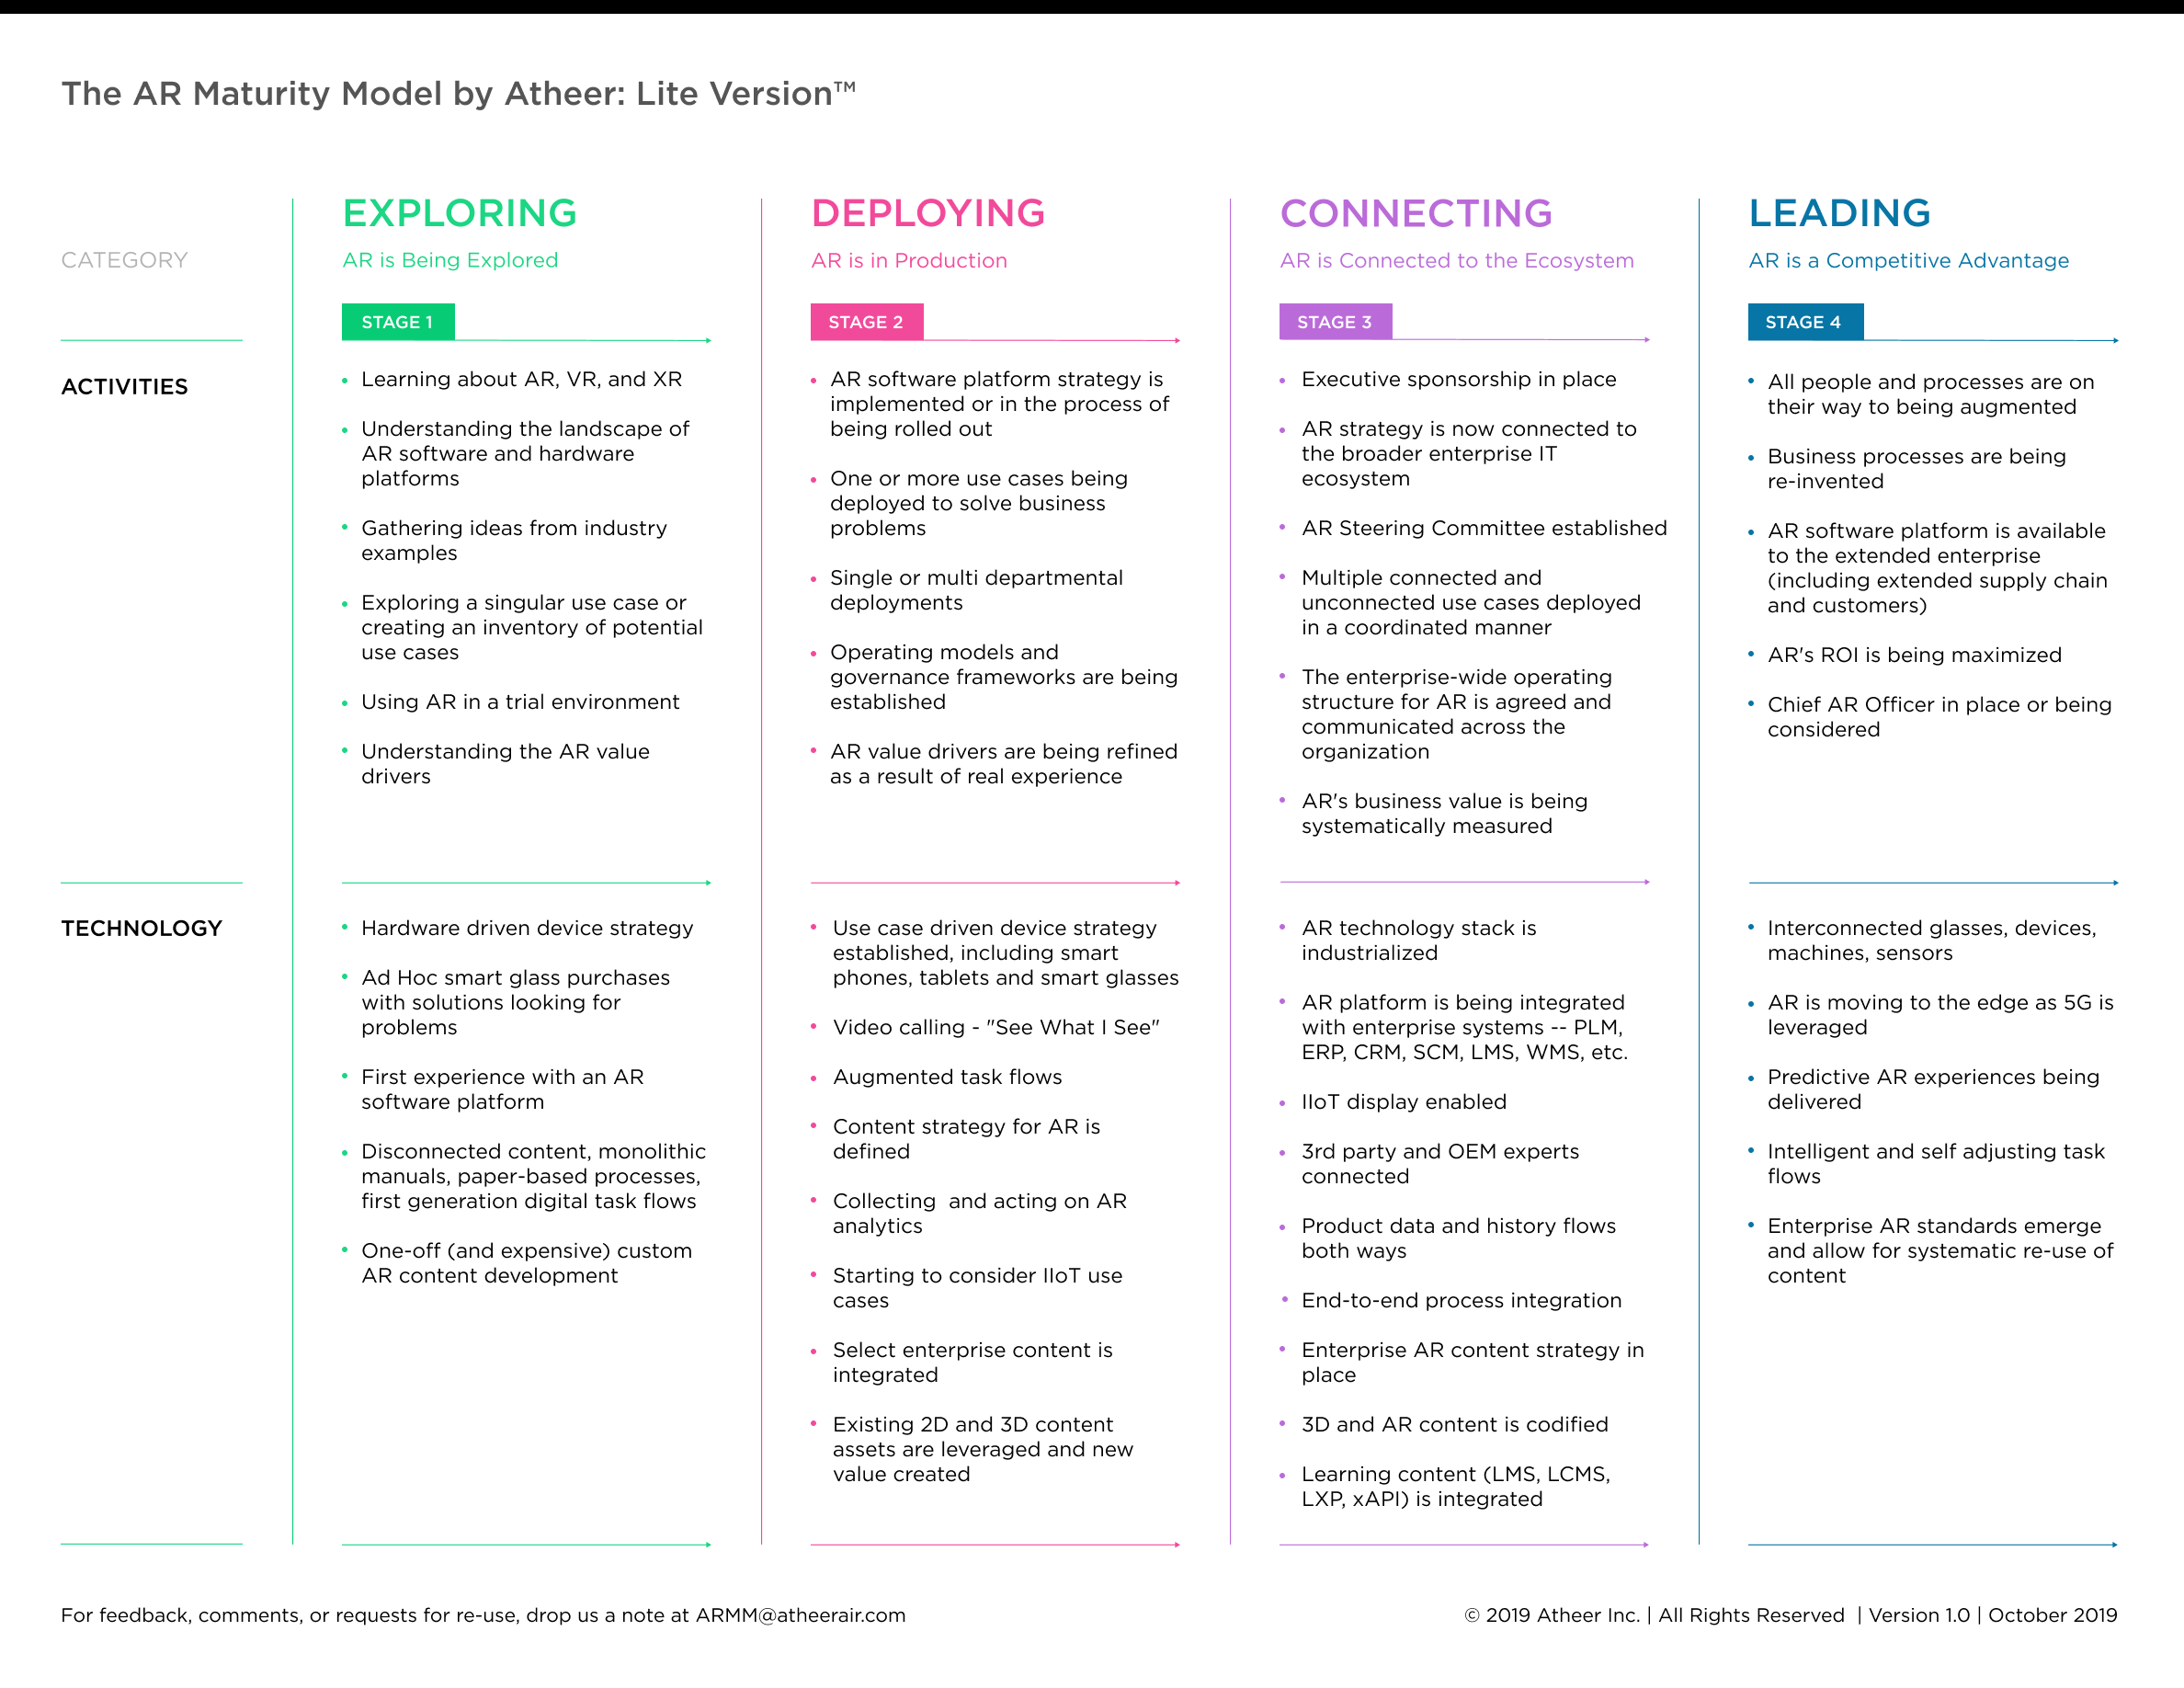 High Res The Atheer AR Maturity Model - Lite Version